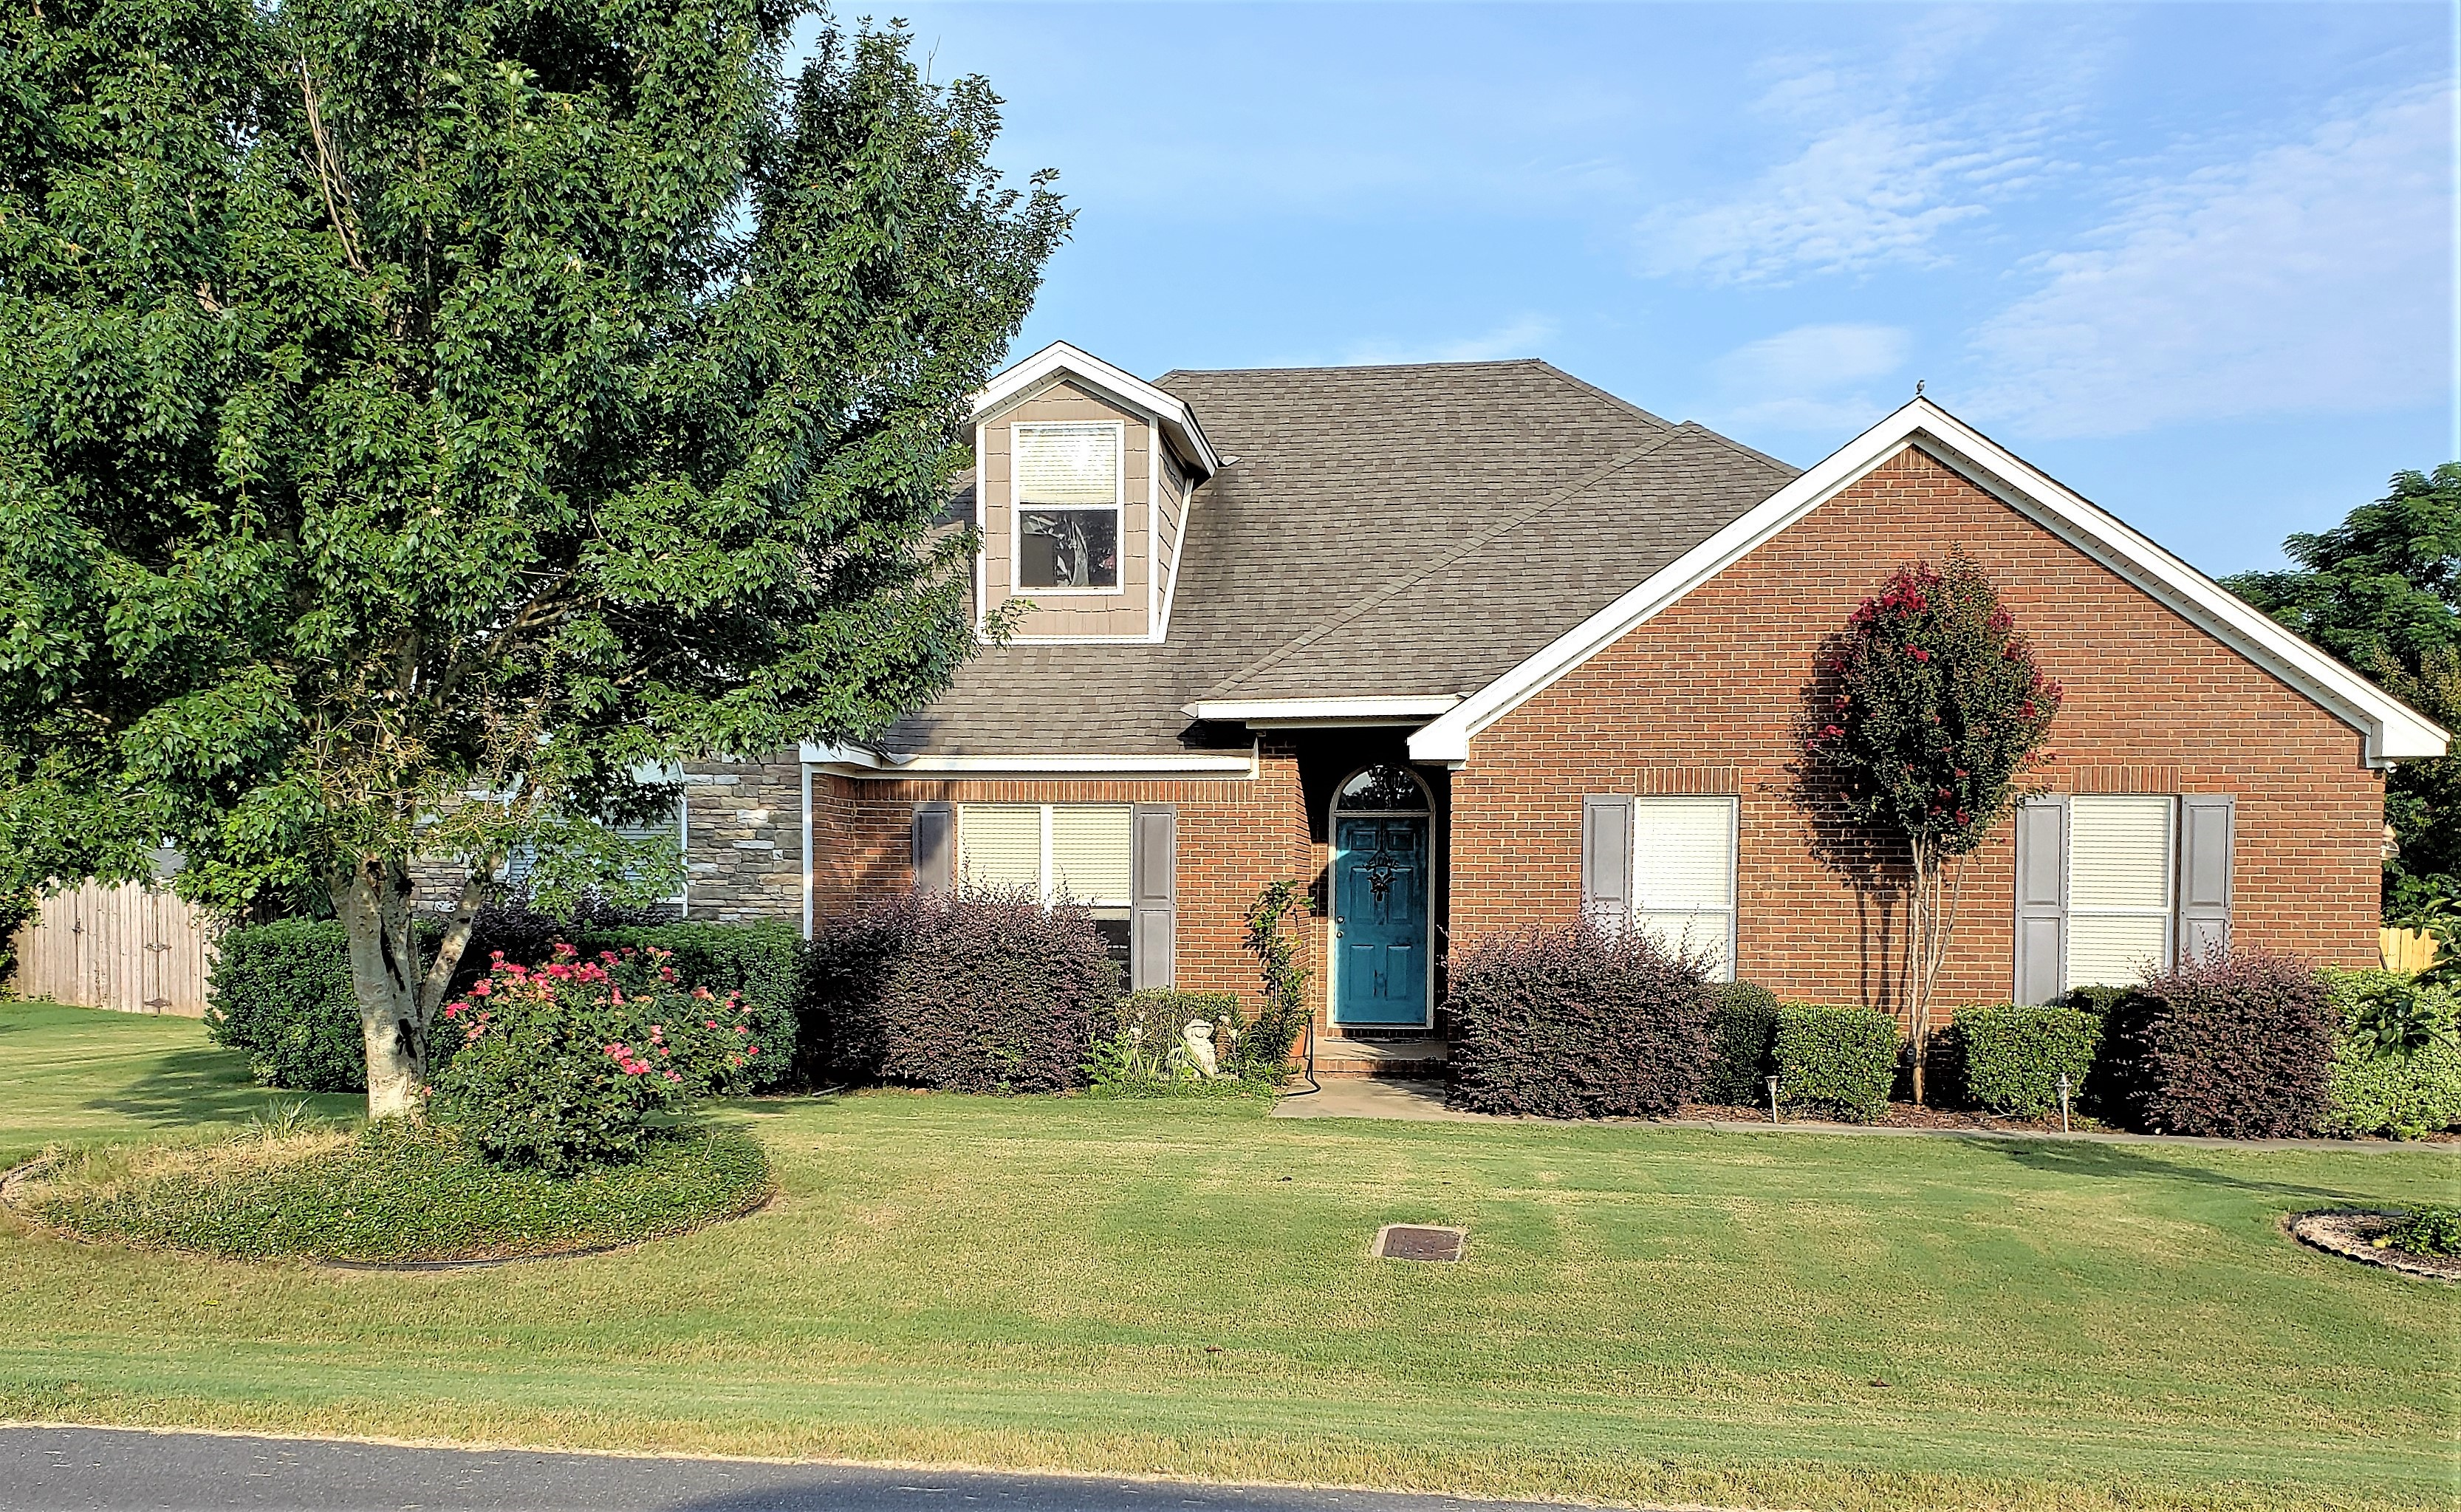 FOR SALE IN MILLBROOK! 3 BED 2 BATH AT 378 SUMMERTIME PARKWAY